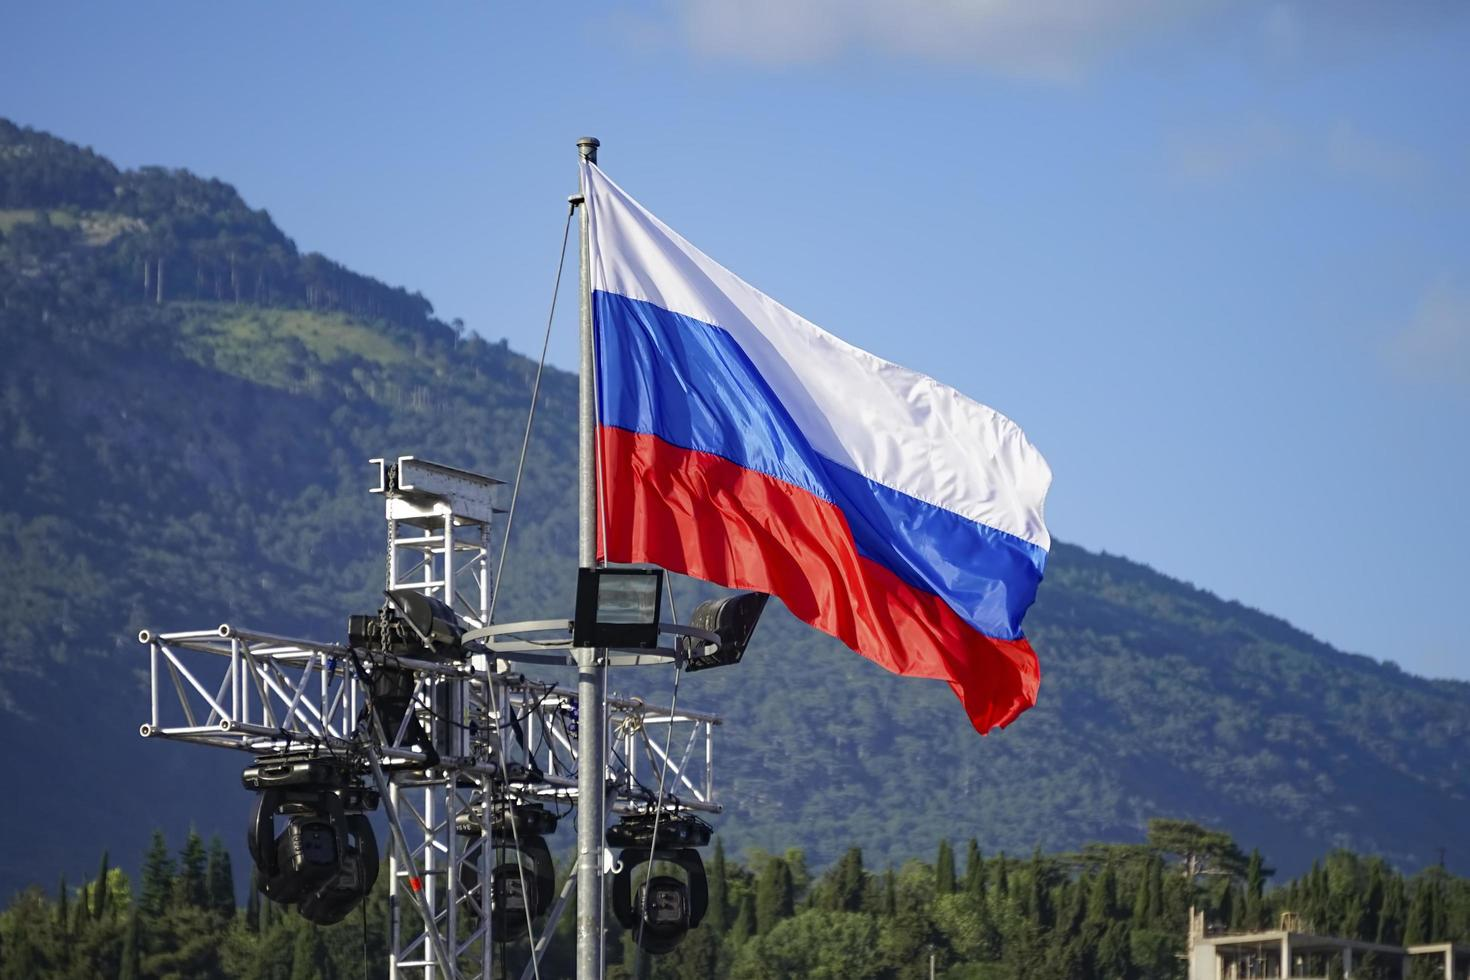 Russian flag with a background of mountains in Yalta, Crimea photo